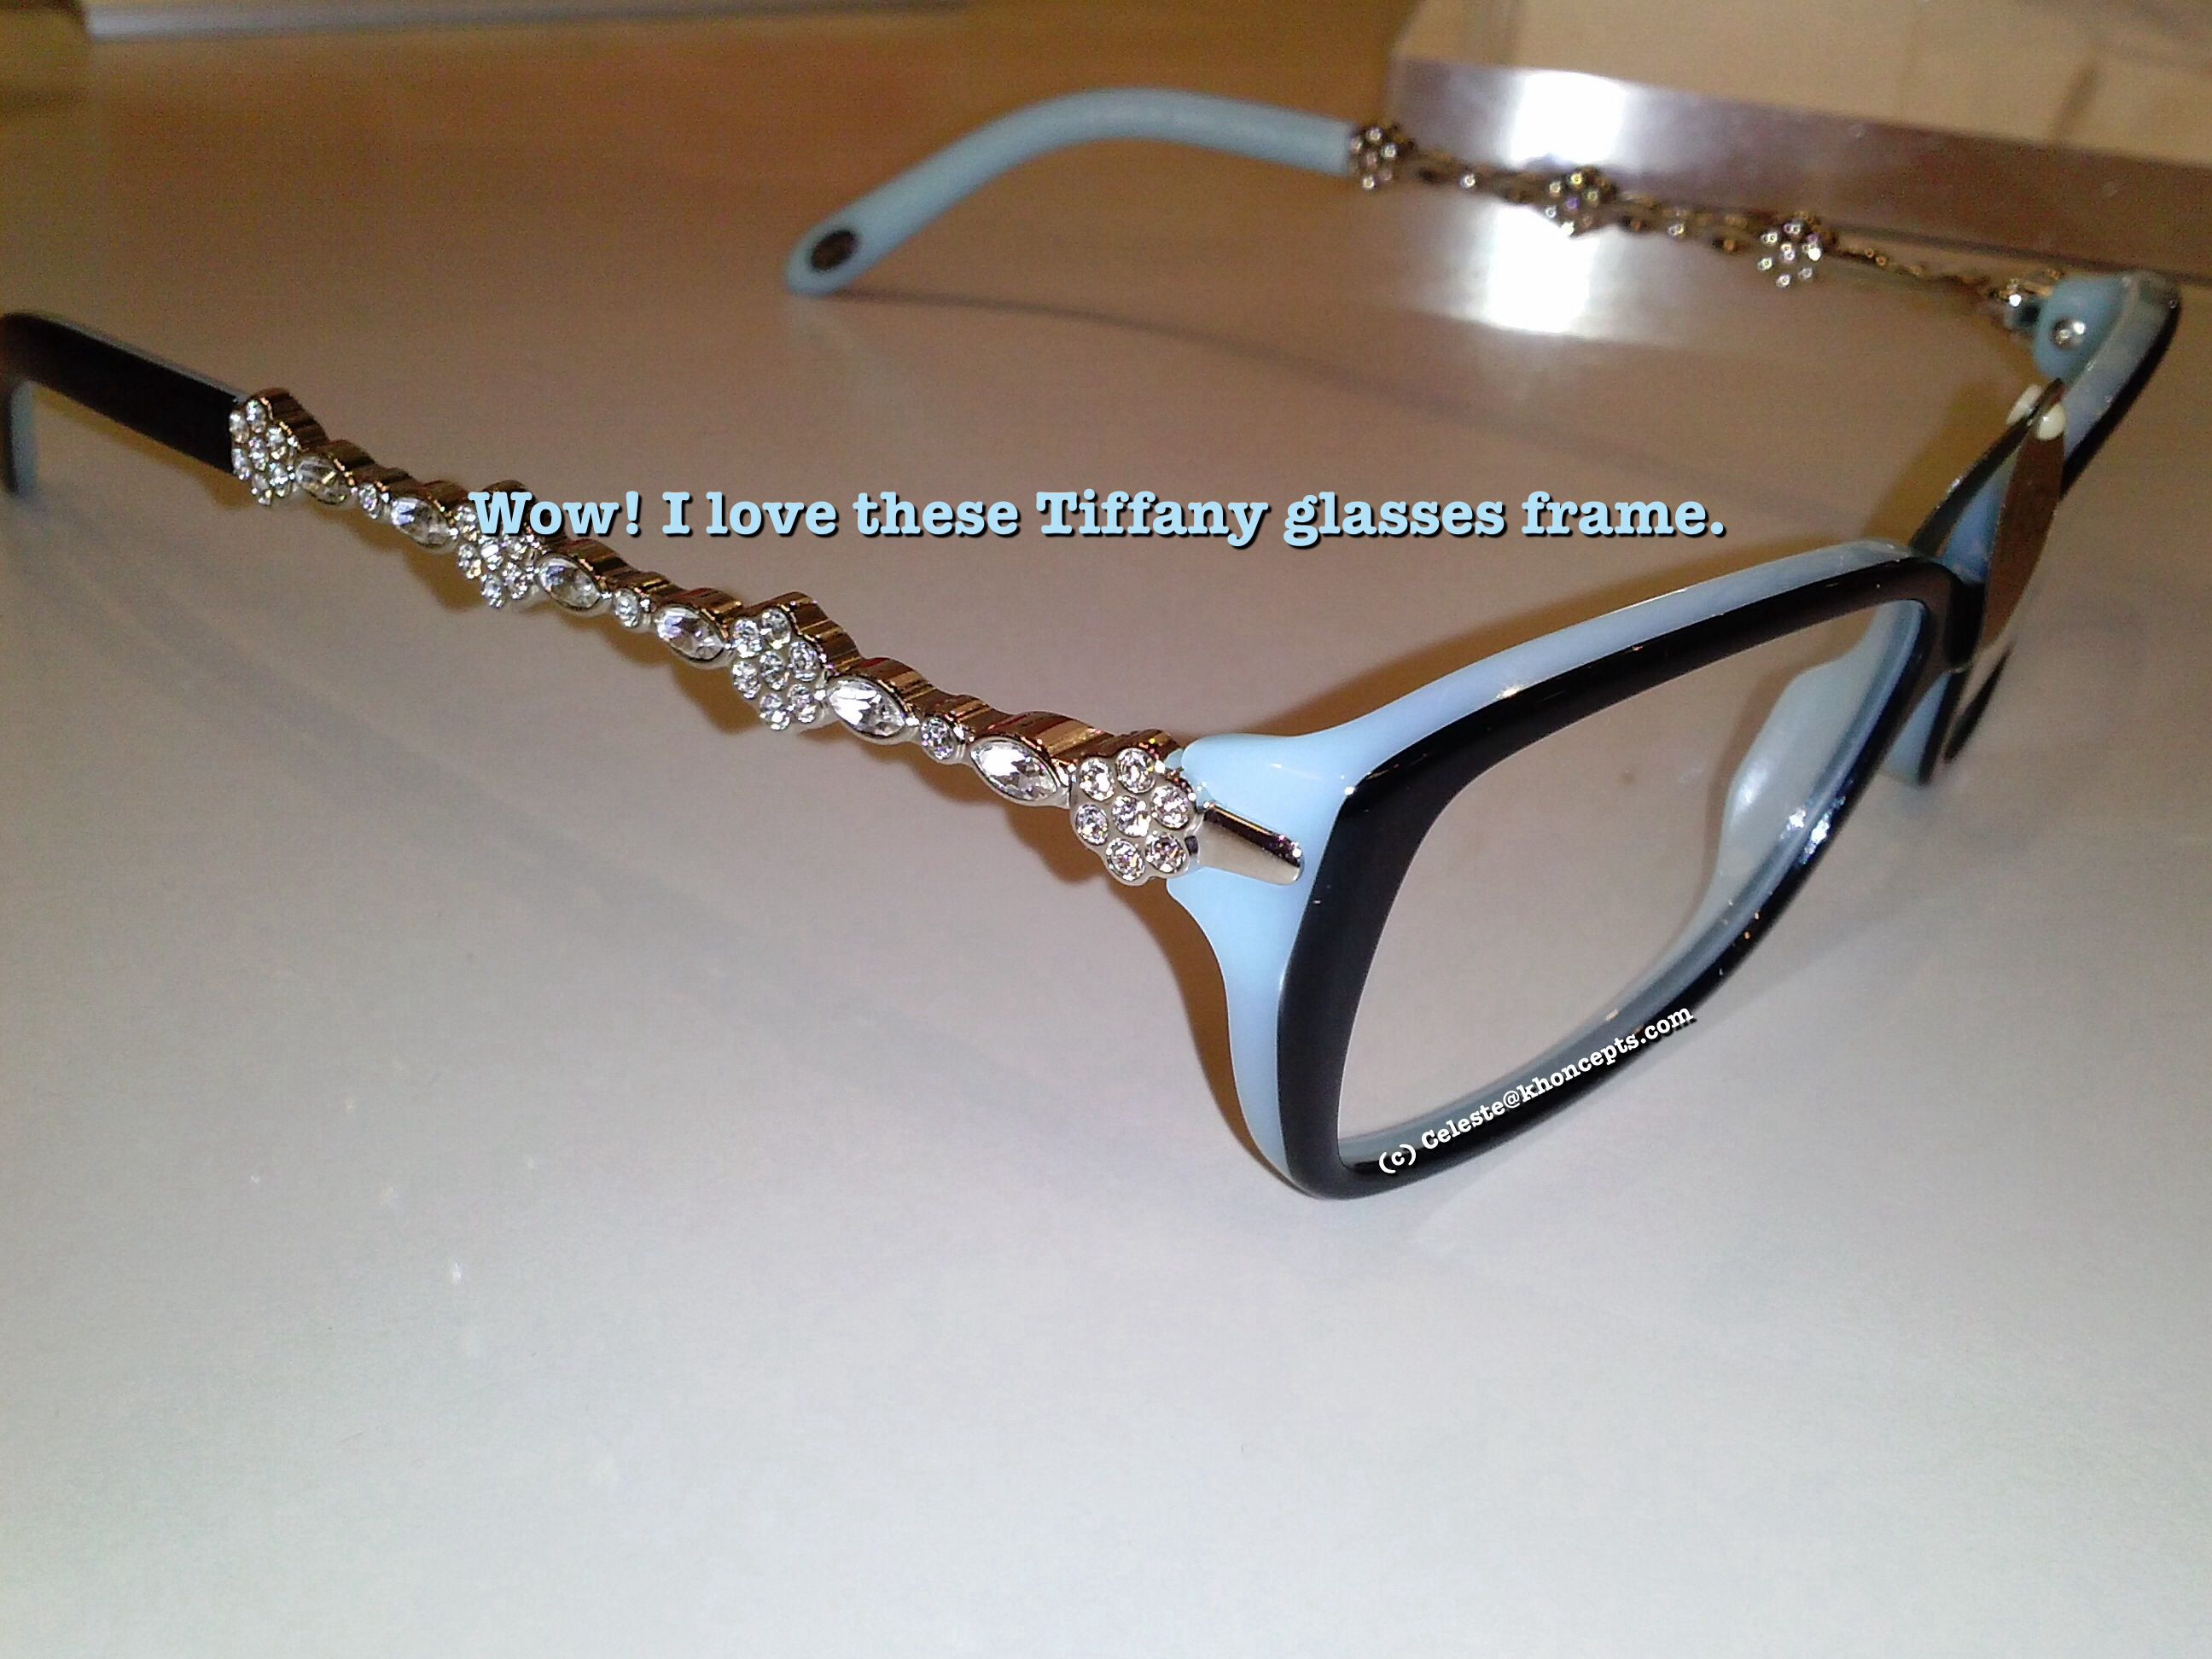 Eyeglasses Frames With Bling : Love these bling #Tiffany glasses frames spotted at my eye ...